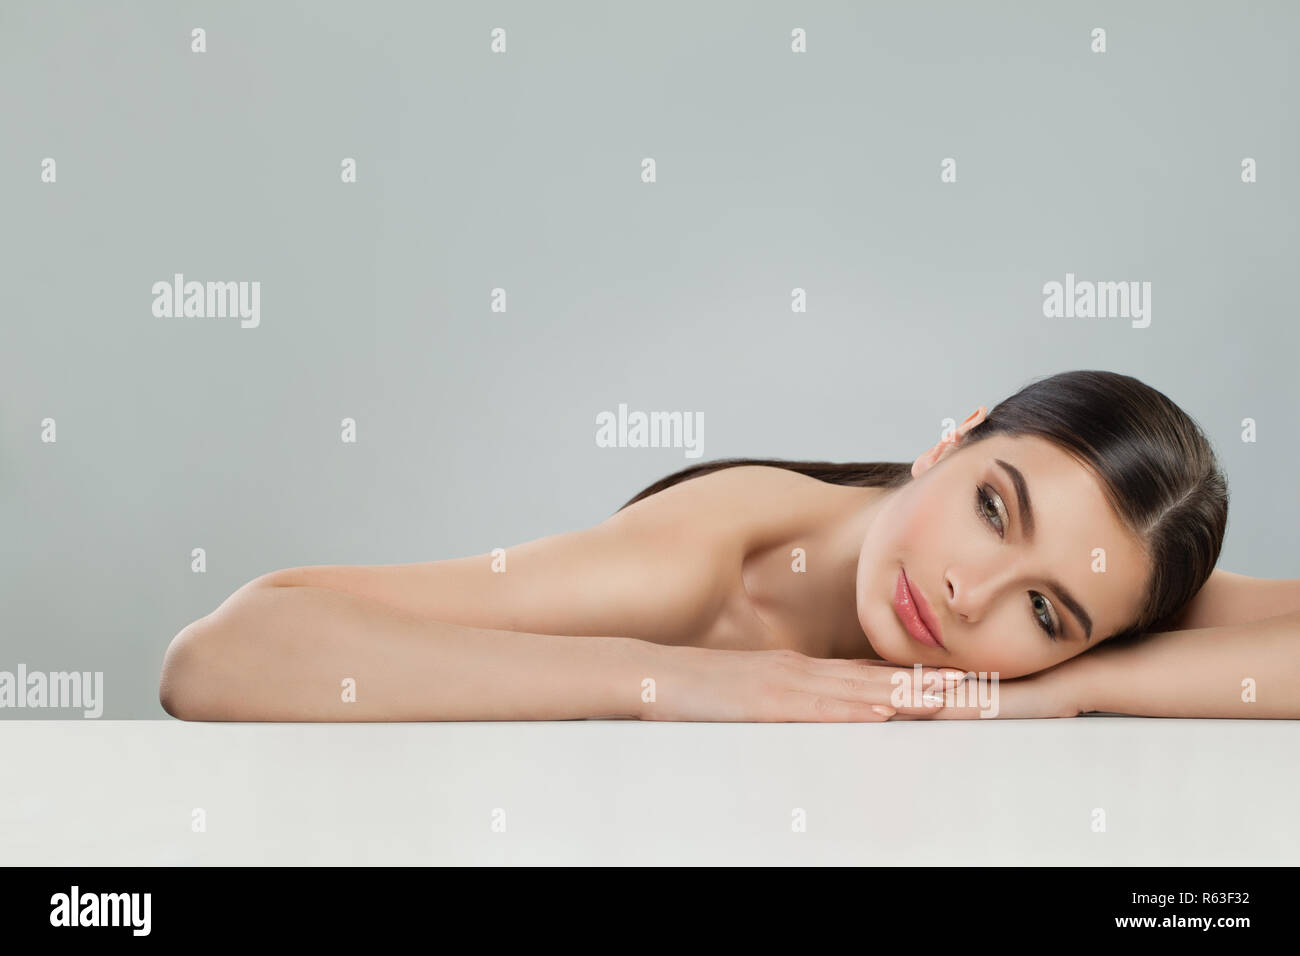 Beautiful young woman with healthy skin. Facial treatment, skincare and aesthetic medicine concept - Stock Image